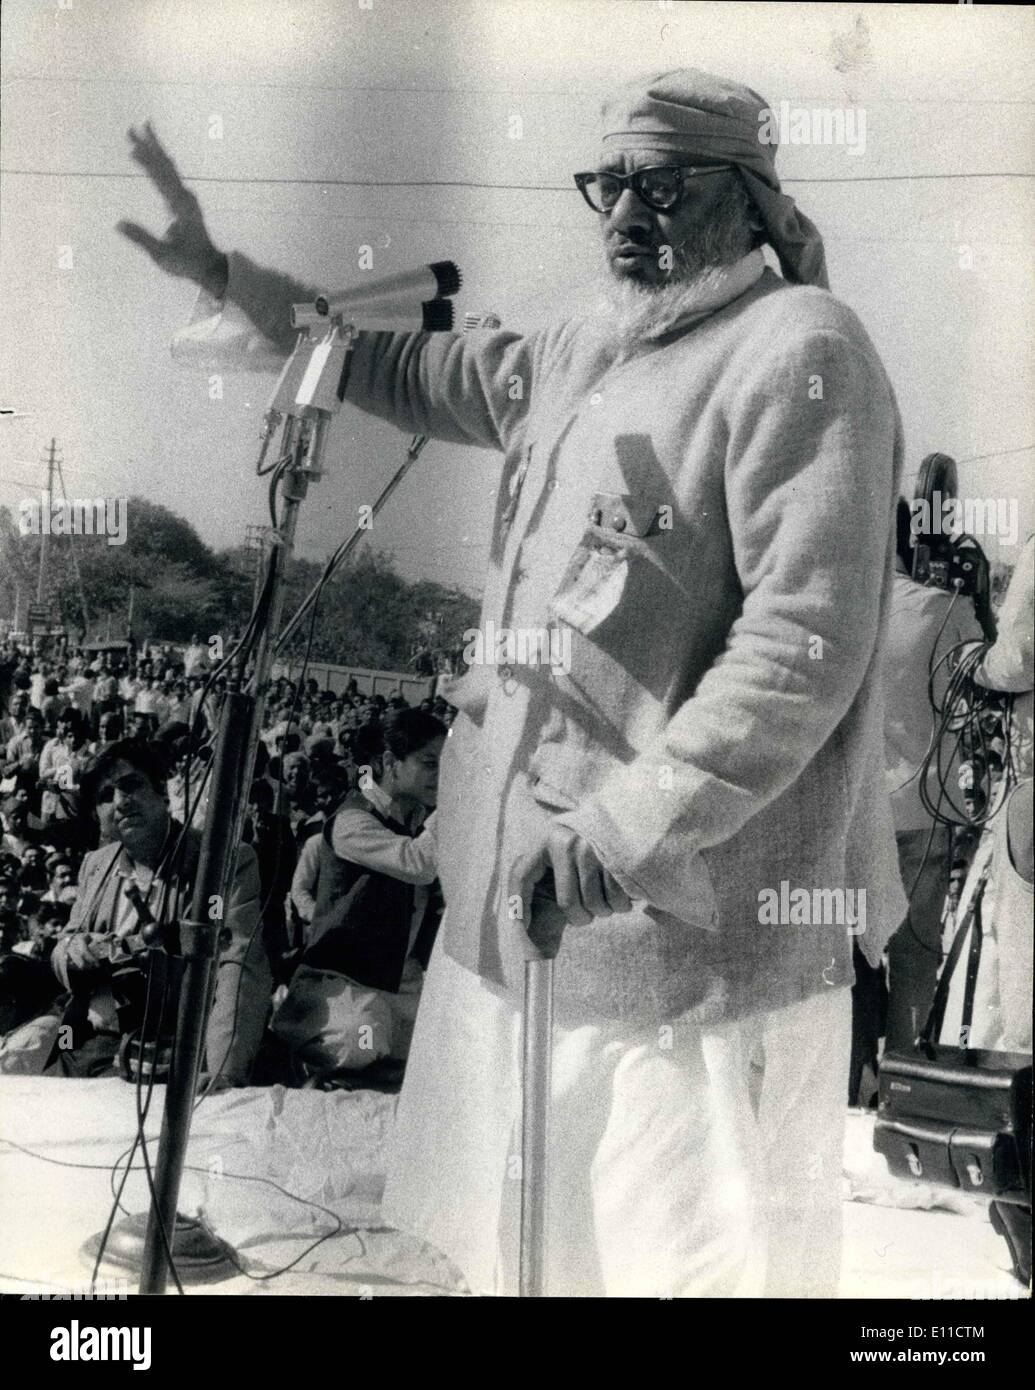 Mar. 03, 1977 - INDIAN ELECTION RALLY BY MR RAJ MARAIN IN DELHI PHOTO SHOWS: The Janata Party stalwart MR RAJ MARAIN seen addressing a mass Rally in New Delhi for the Indian election which takes place this month. - Stock Image